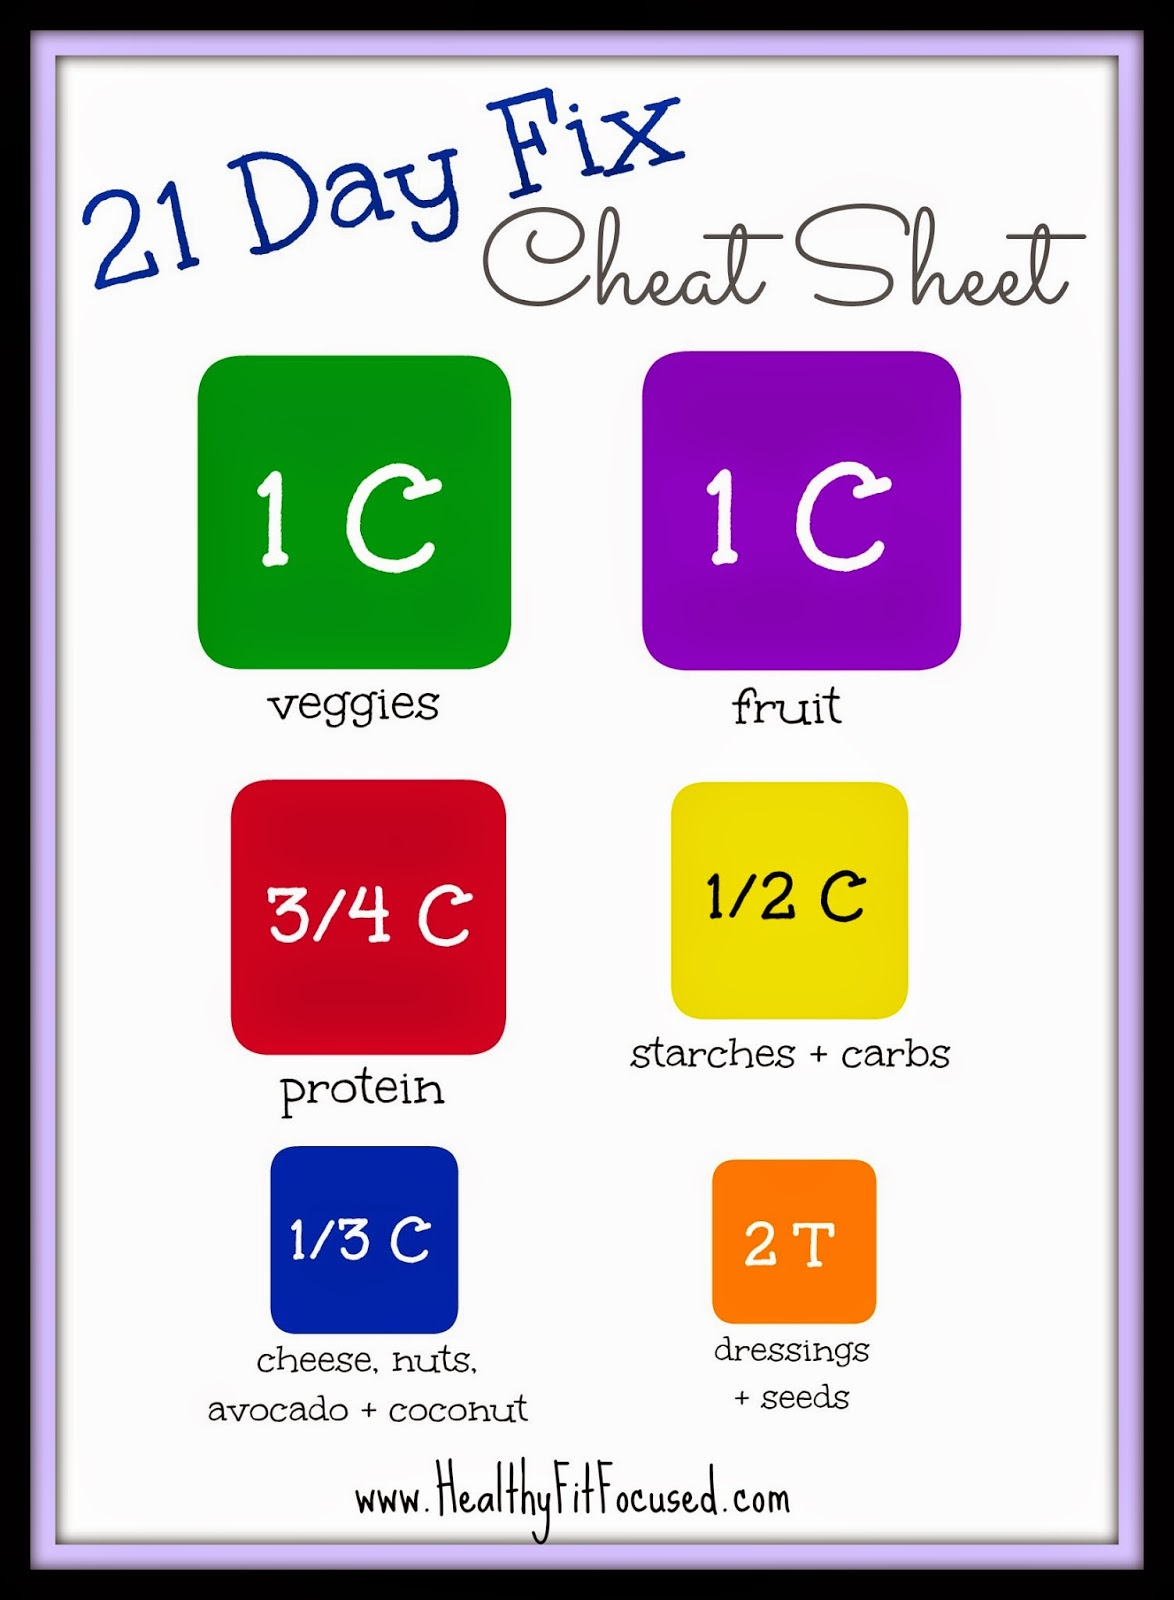 day fix meal breakdown cheat sheet made also healthy fit and focused sheets rh healthyfitfocused